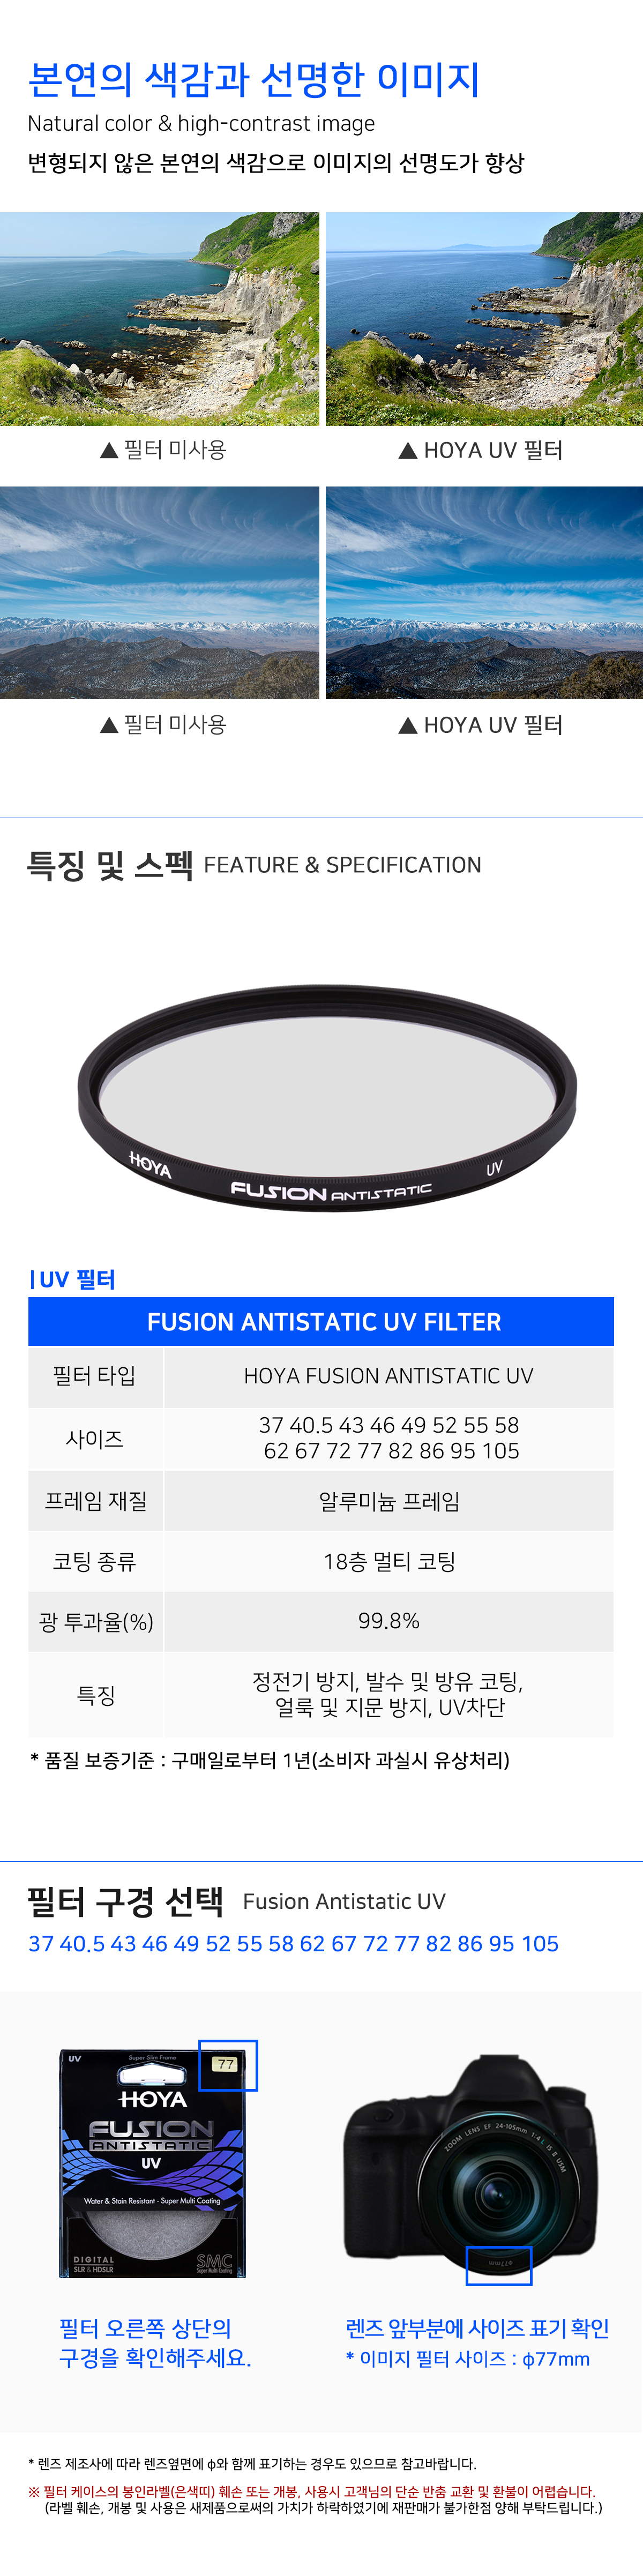 FUSION_ANTISTATIC_UV_04.jpg